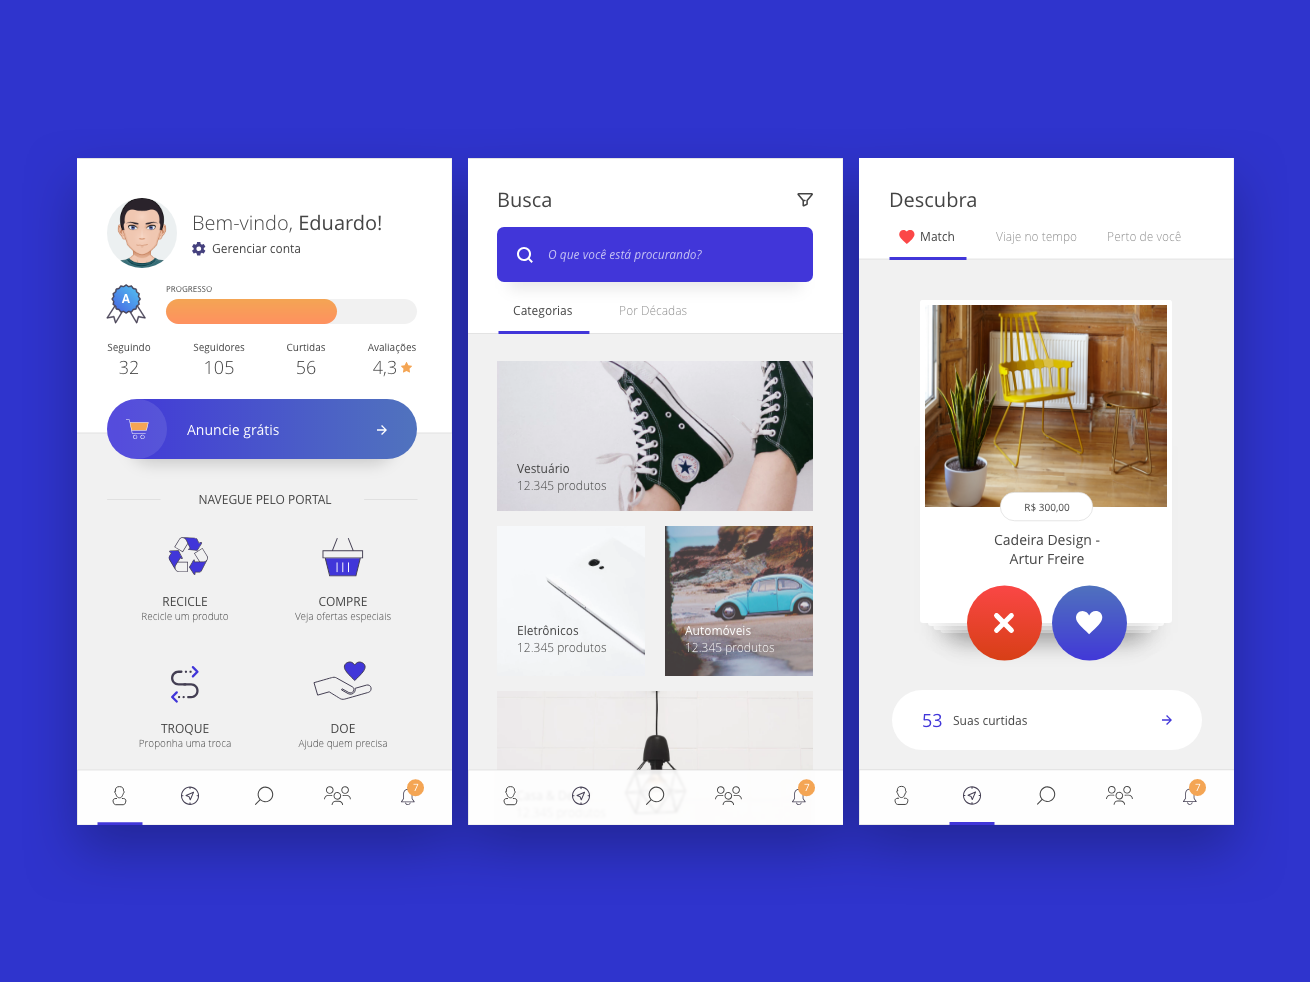 Marketplace - Discover, like, buy & sell flat uidesign minimal home tinder search profile portal visual user experience interface mobile ux ui marketplace ecommerce app ecommerce